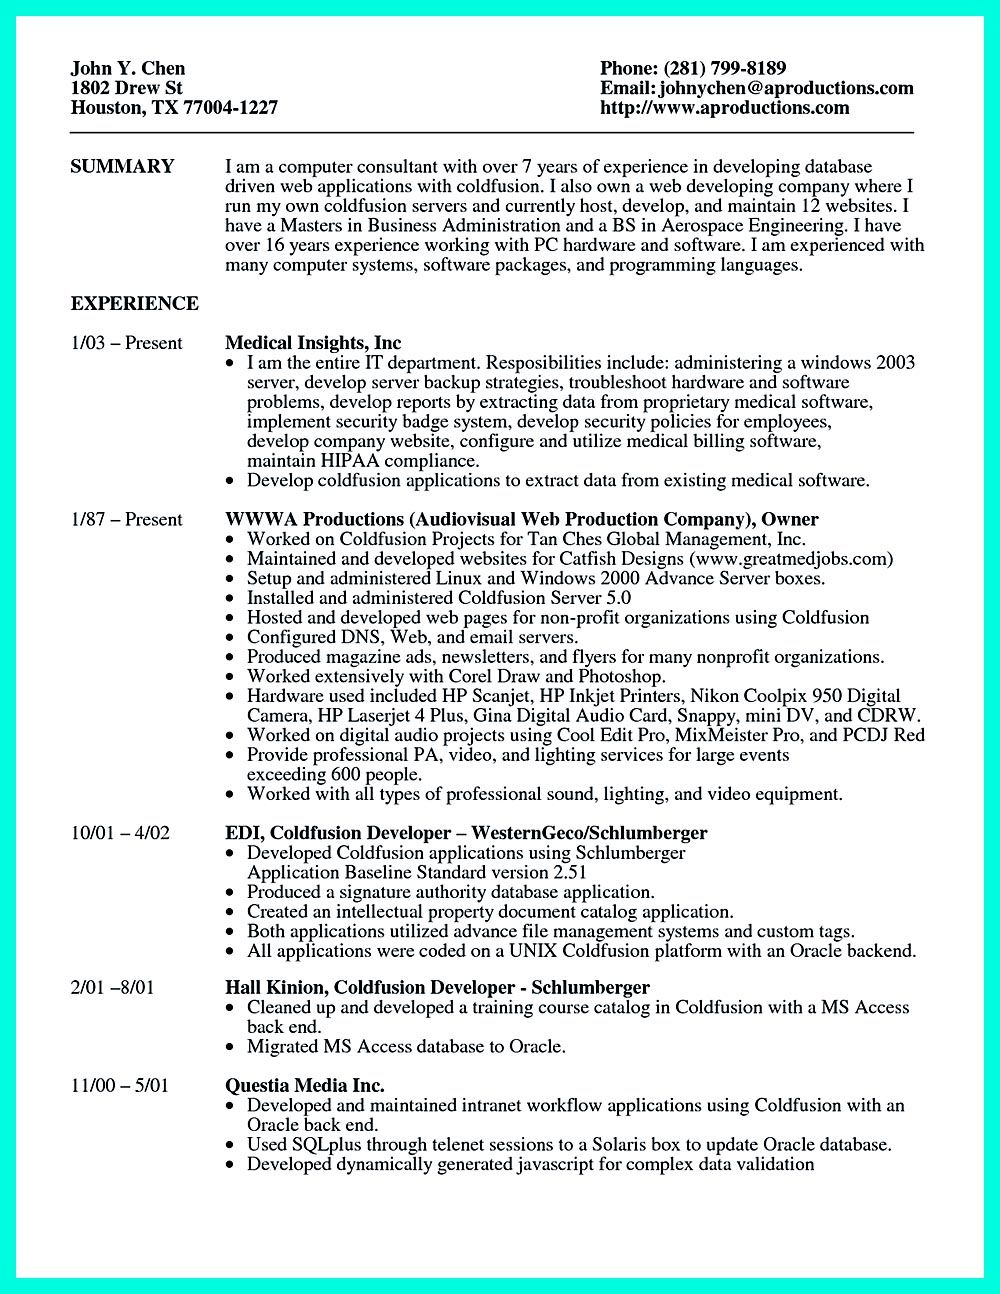 Computer Programmer Resume Has Some Paragraphs That Focuses On The Project  Management, Object Oriented Programming